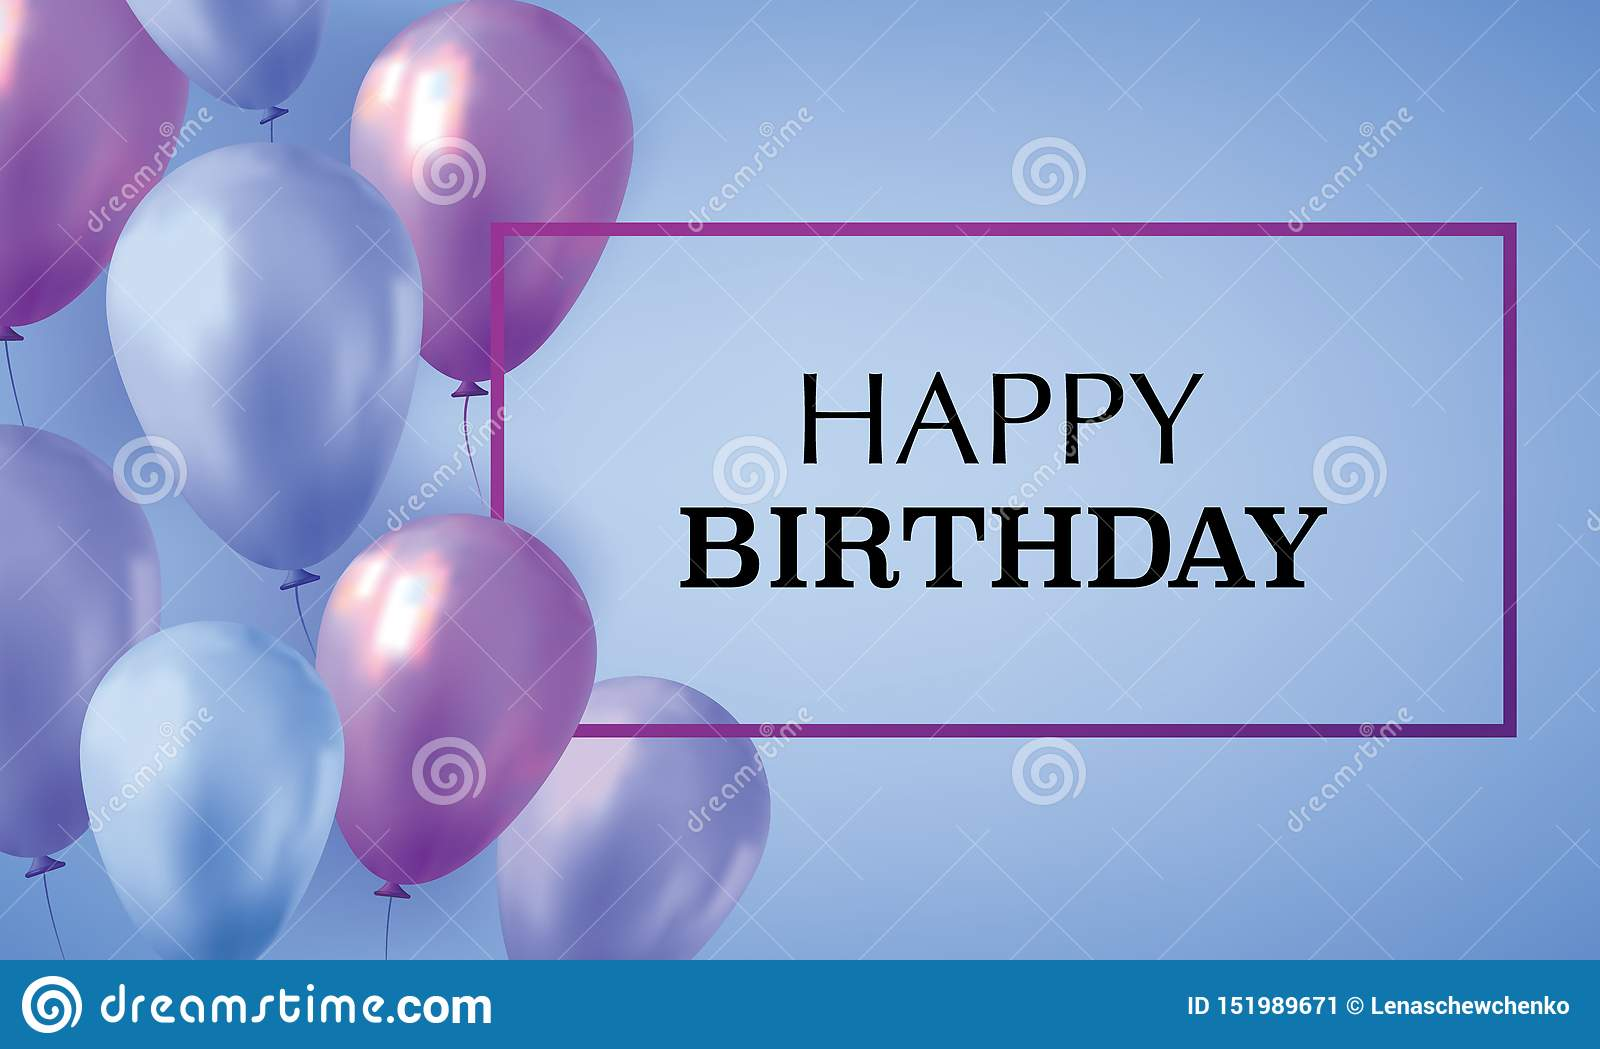 https www dreamstime com blue violet realistic balloons filled helium blue background text happy birthday invitation card blue violet image151989671